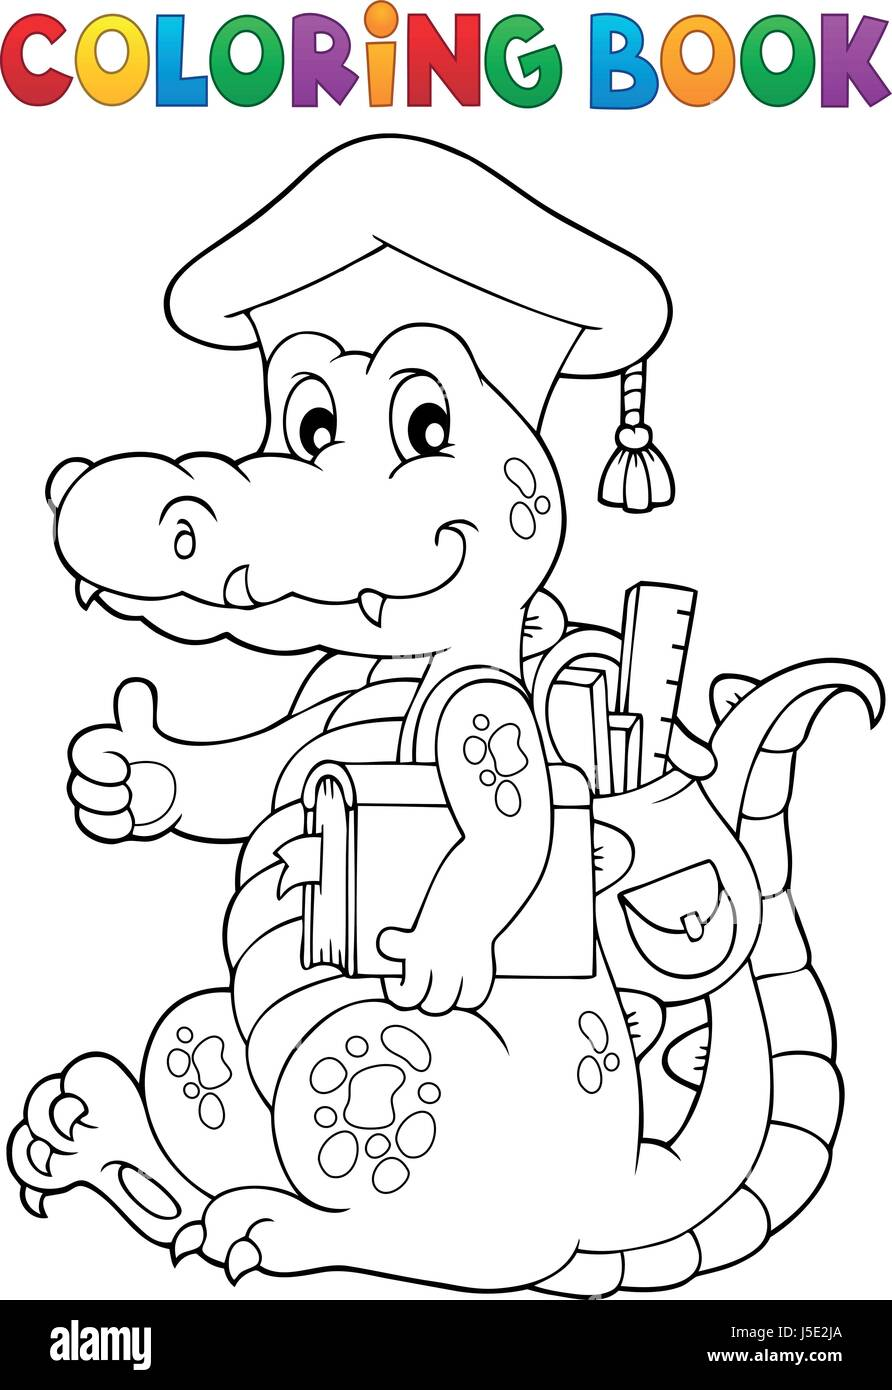 Coloring book school - Coloring Book School Theme Crocodile Eps10 Vector Illustration